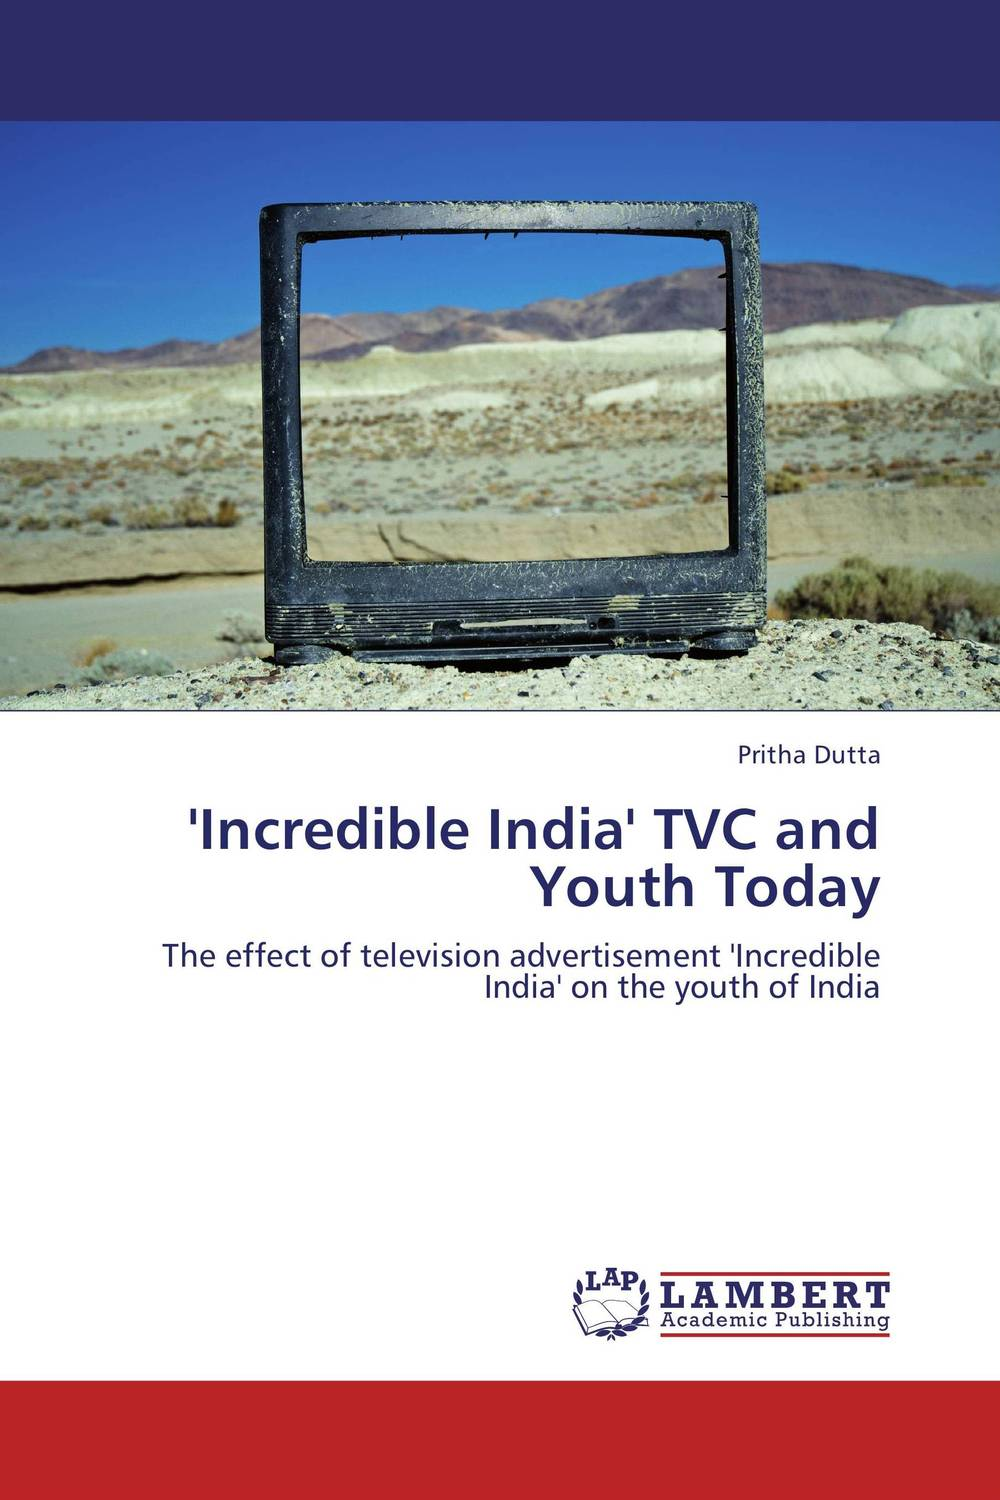 'Incredible India' TVC and Youth Today